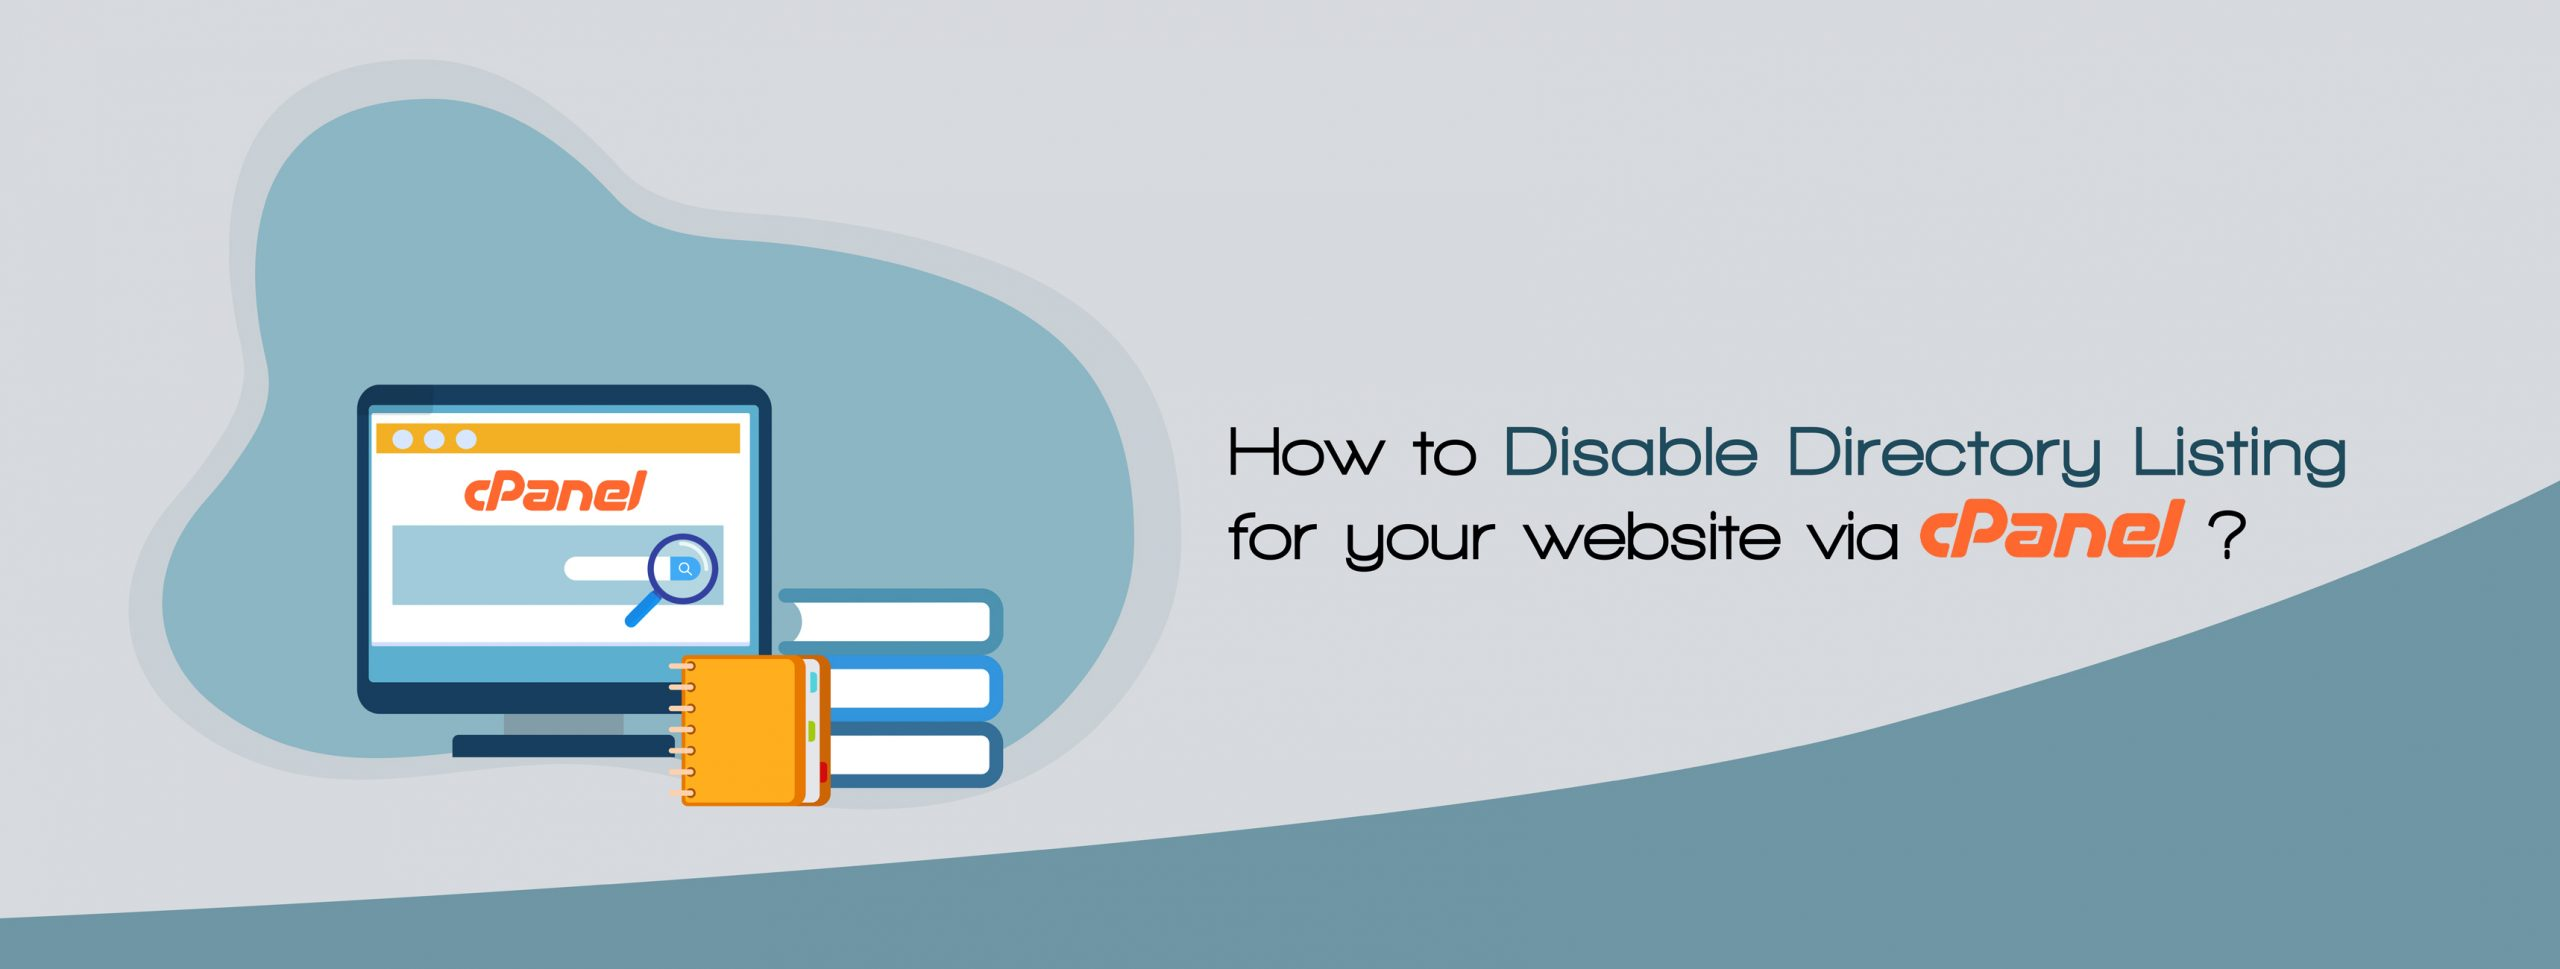 How to Disable directory listing for your website via cPanel?